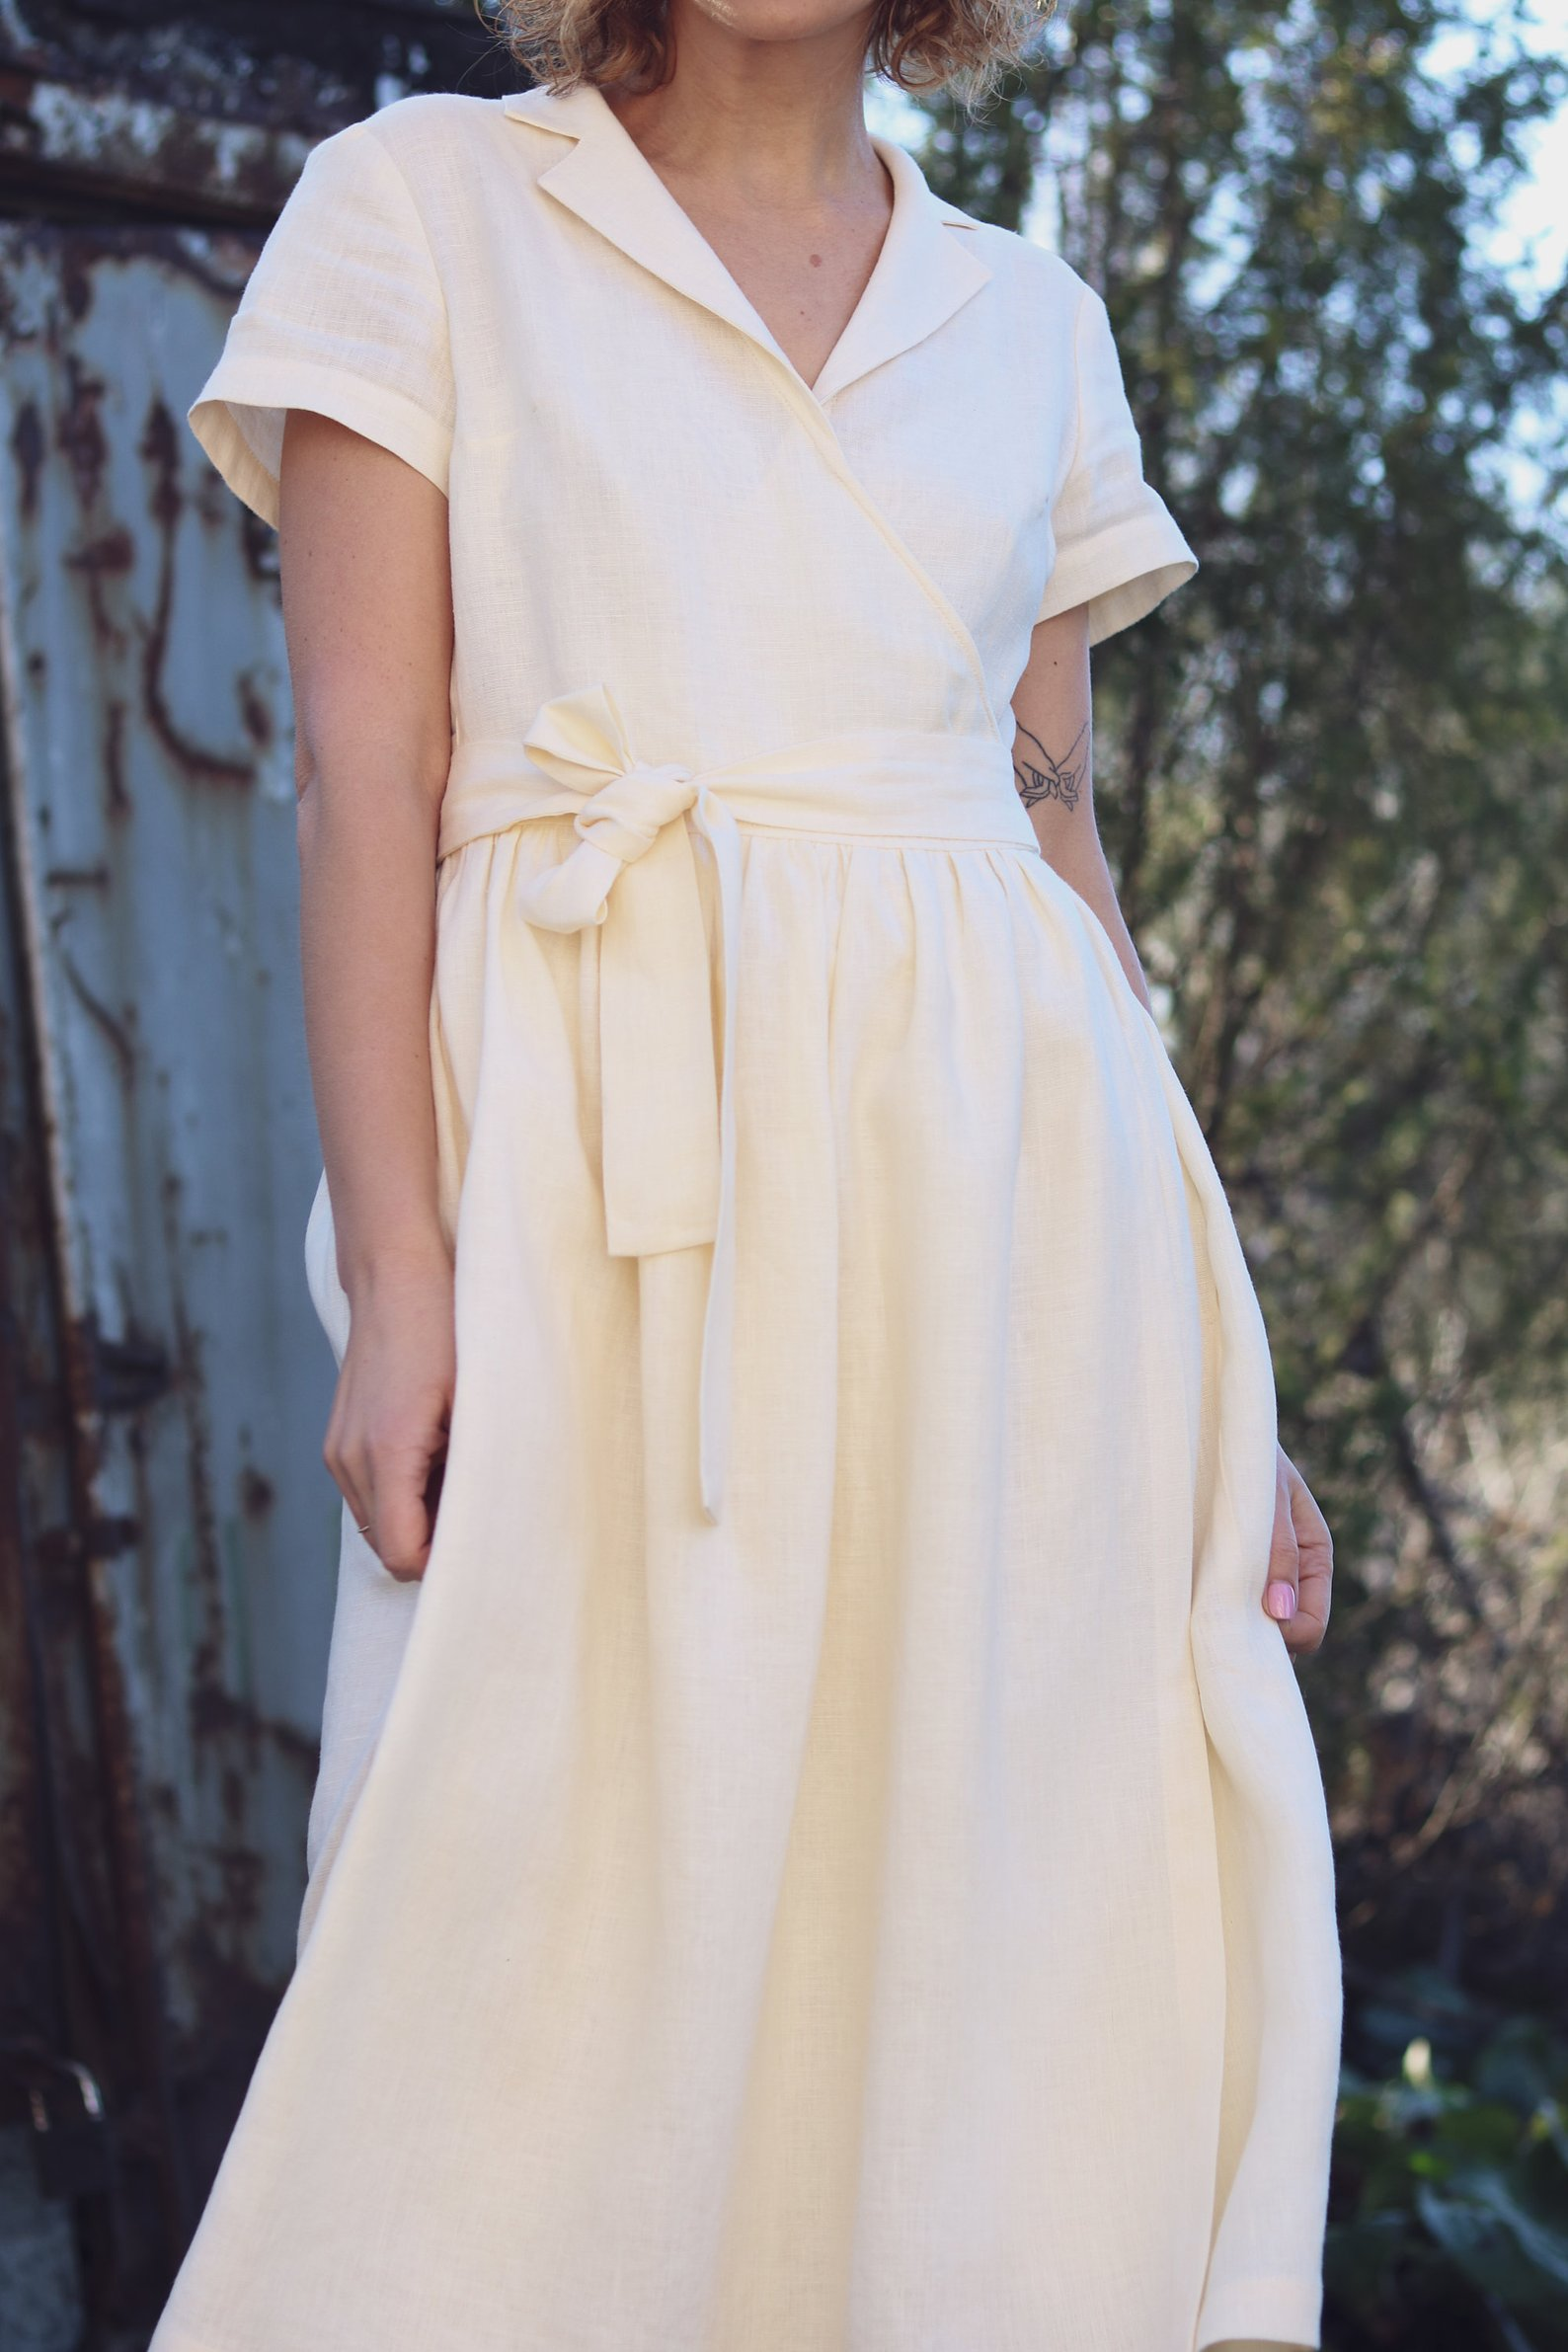 OFF/ON Clothing - Linen Wrap Dress in Ivory.This gorgeous timeless dress is the perfect example of a piece that can last through many seasons and years. The linen provides breathability for warm days and the collar makes it great for a professional setting and a fun day out!